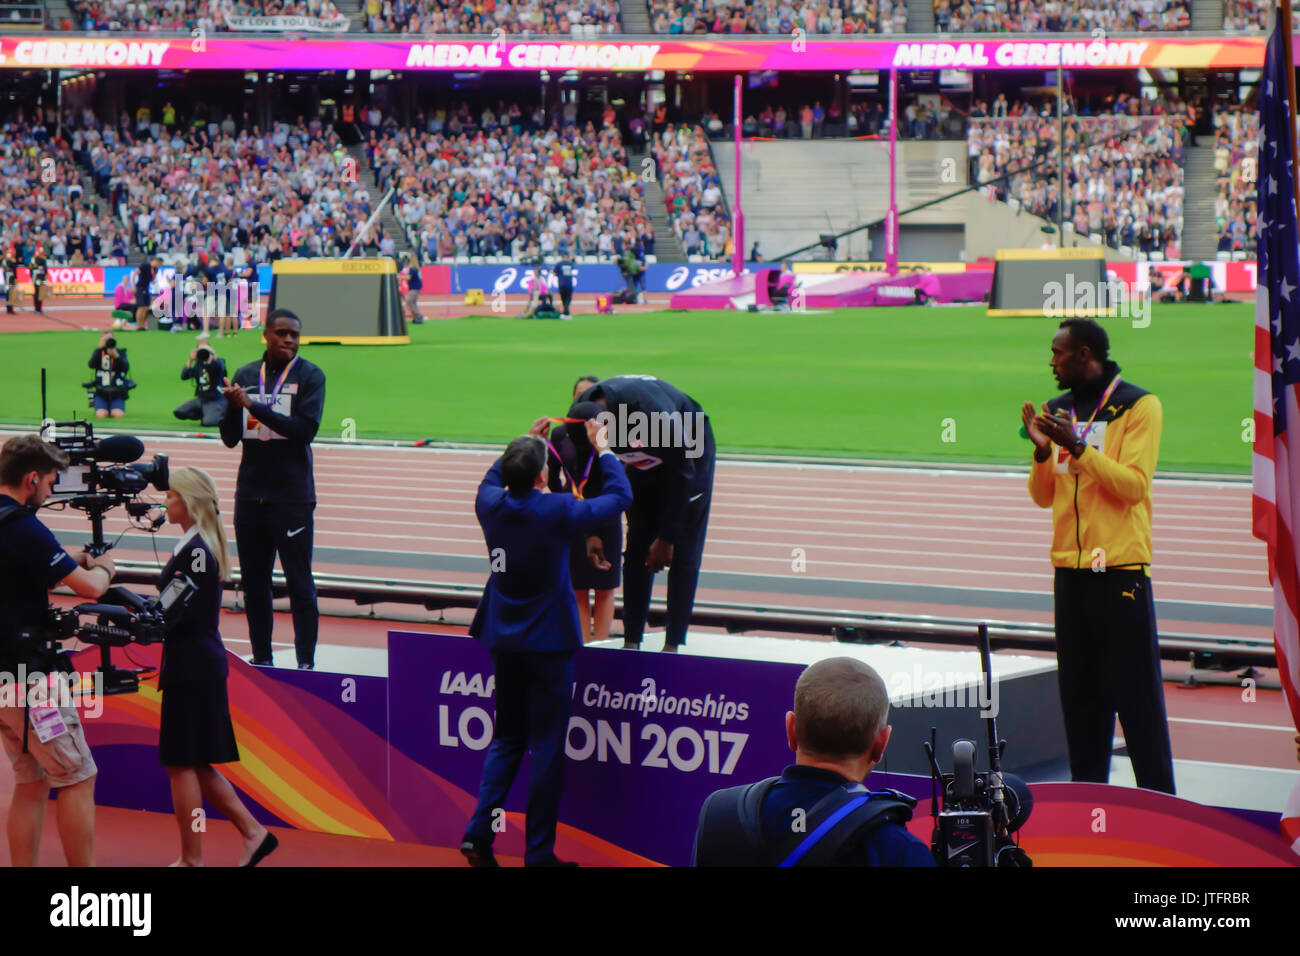 Men's 100m award ceremony at the London 2017 IAAF World Championships in London, UK, 06 August 2017.  Justin Gatlin of the USA won the gold medal. - Stock Image